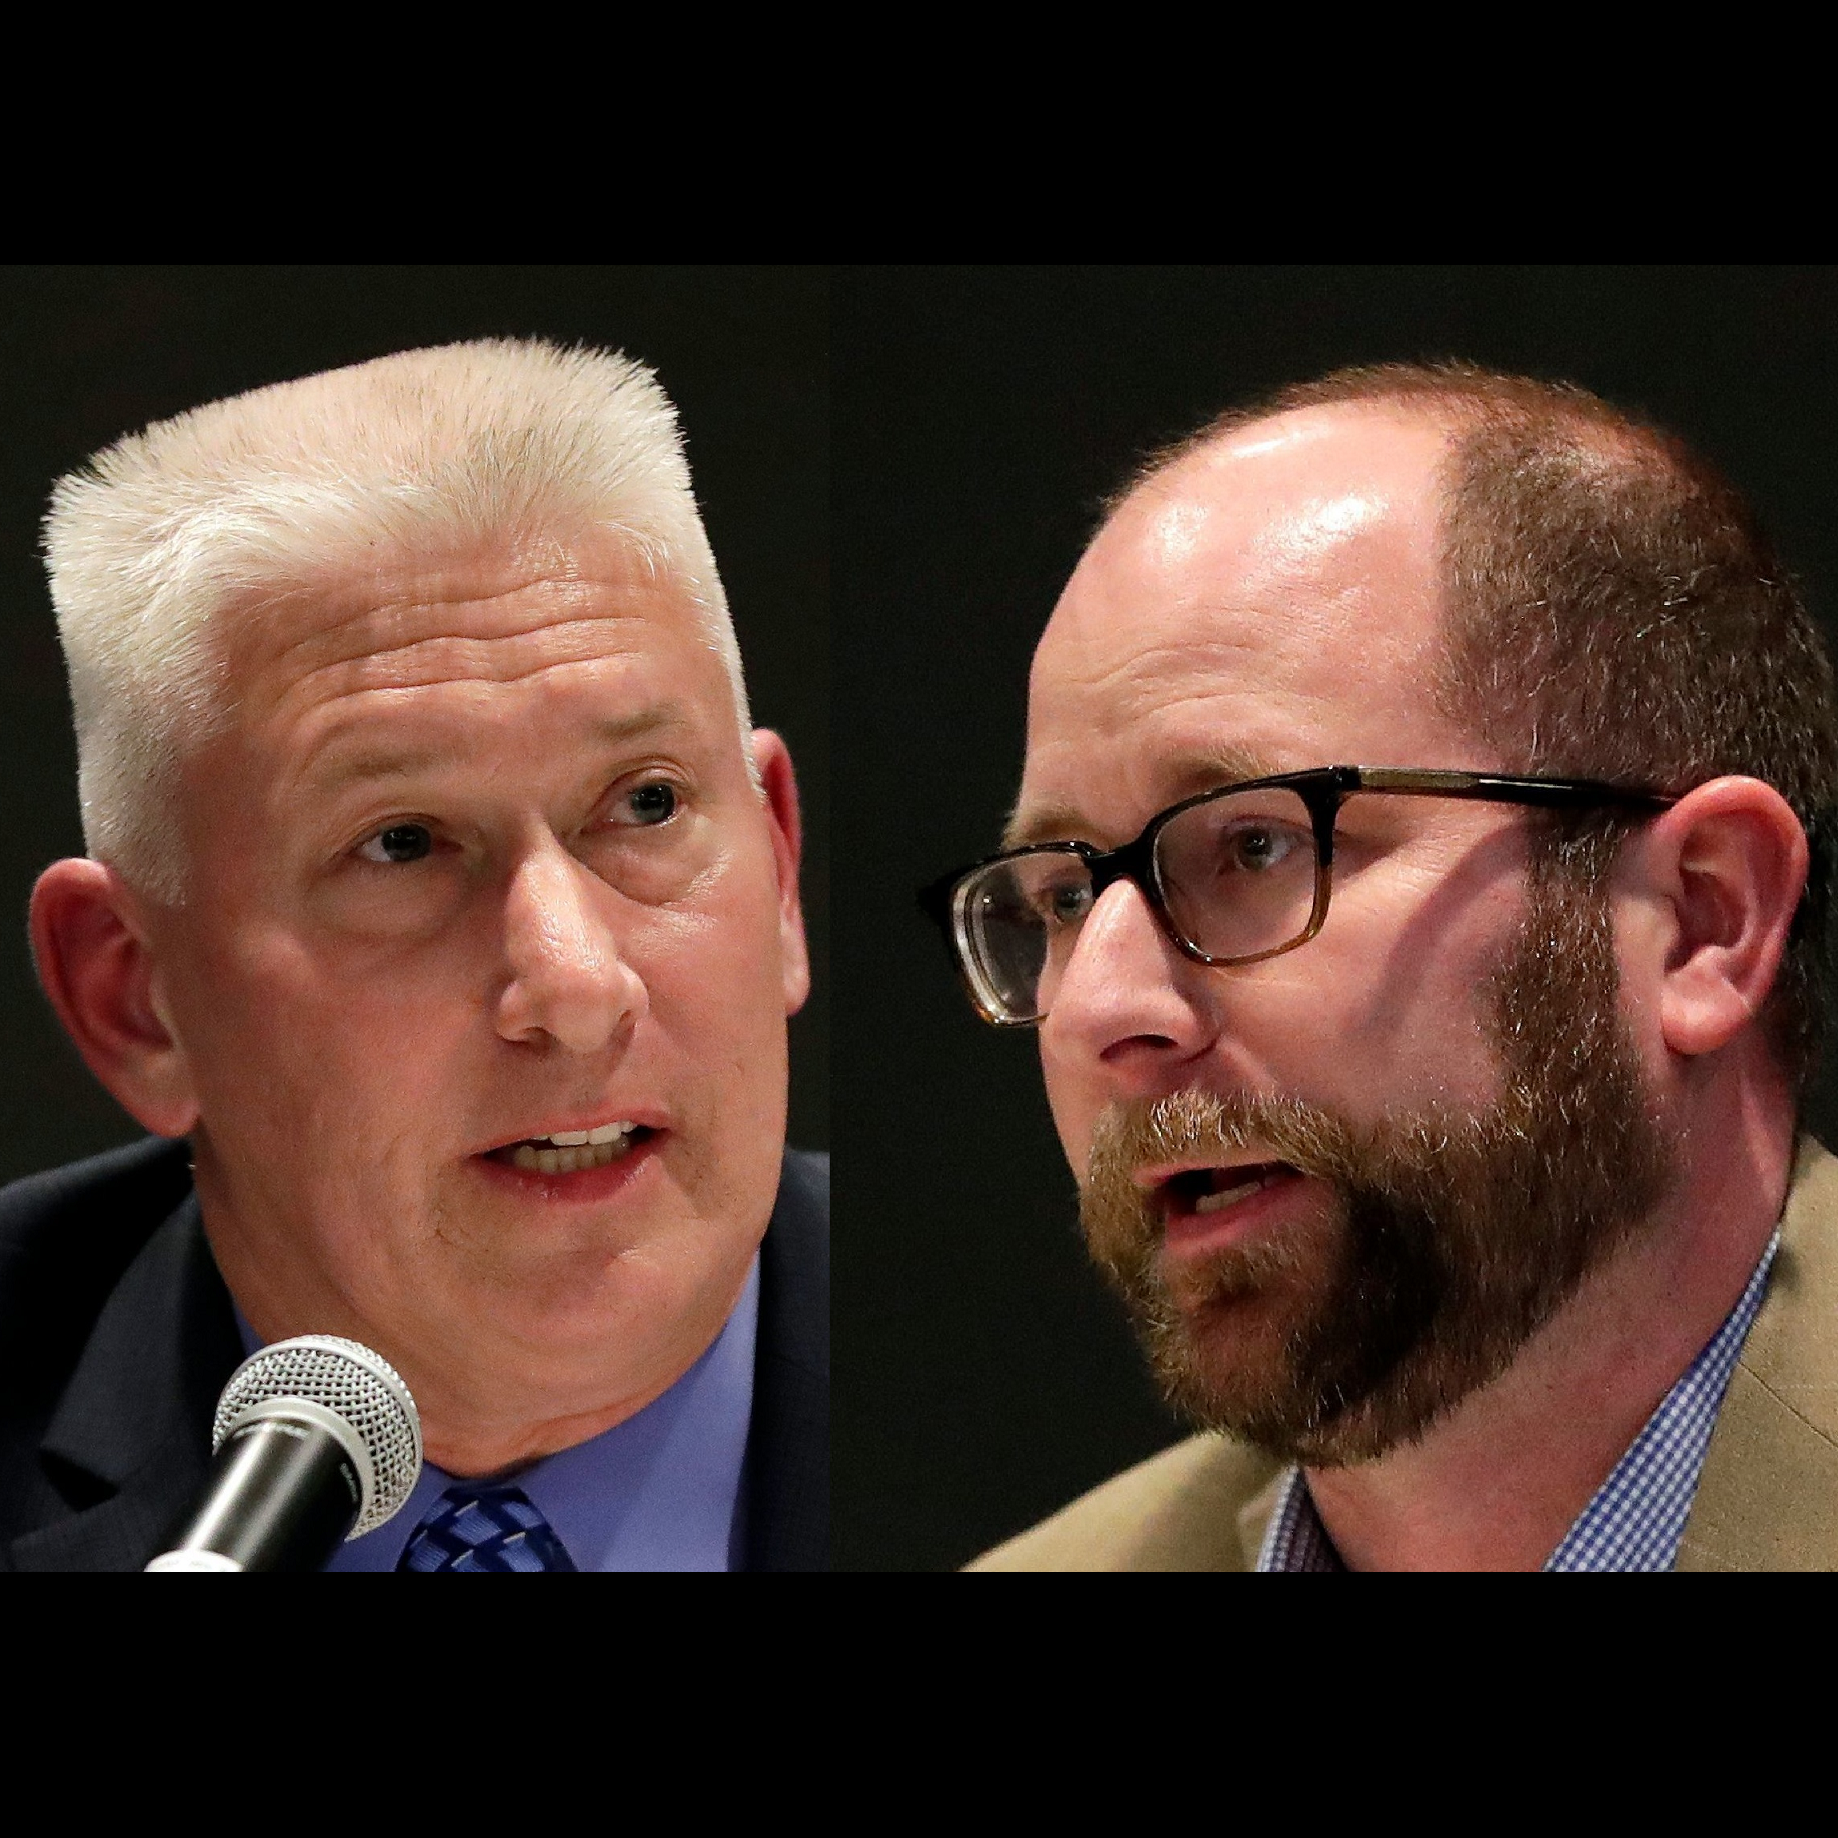 Eric Genrich, Patrick Buckley to vie for Green Bay mayor after winning crowded primary